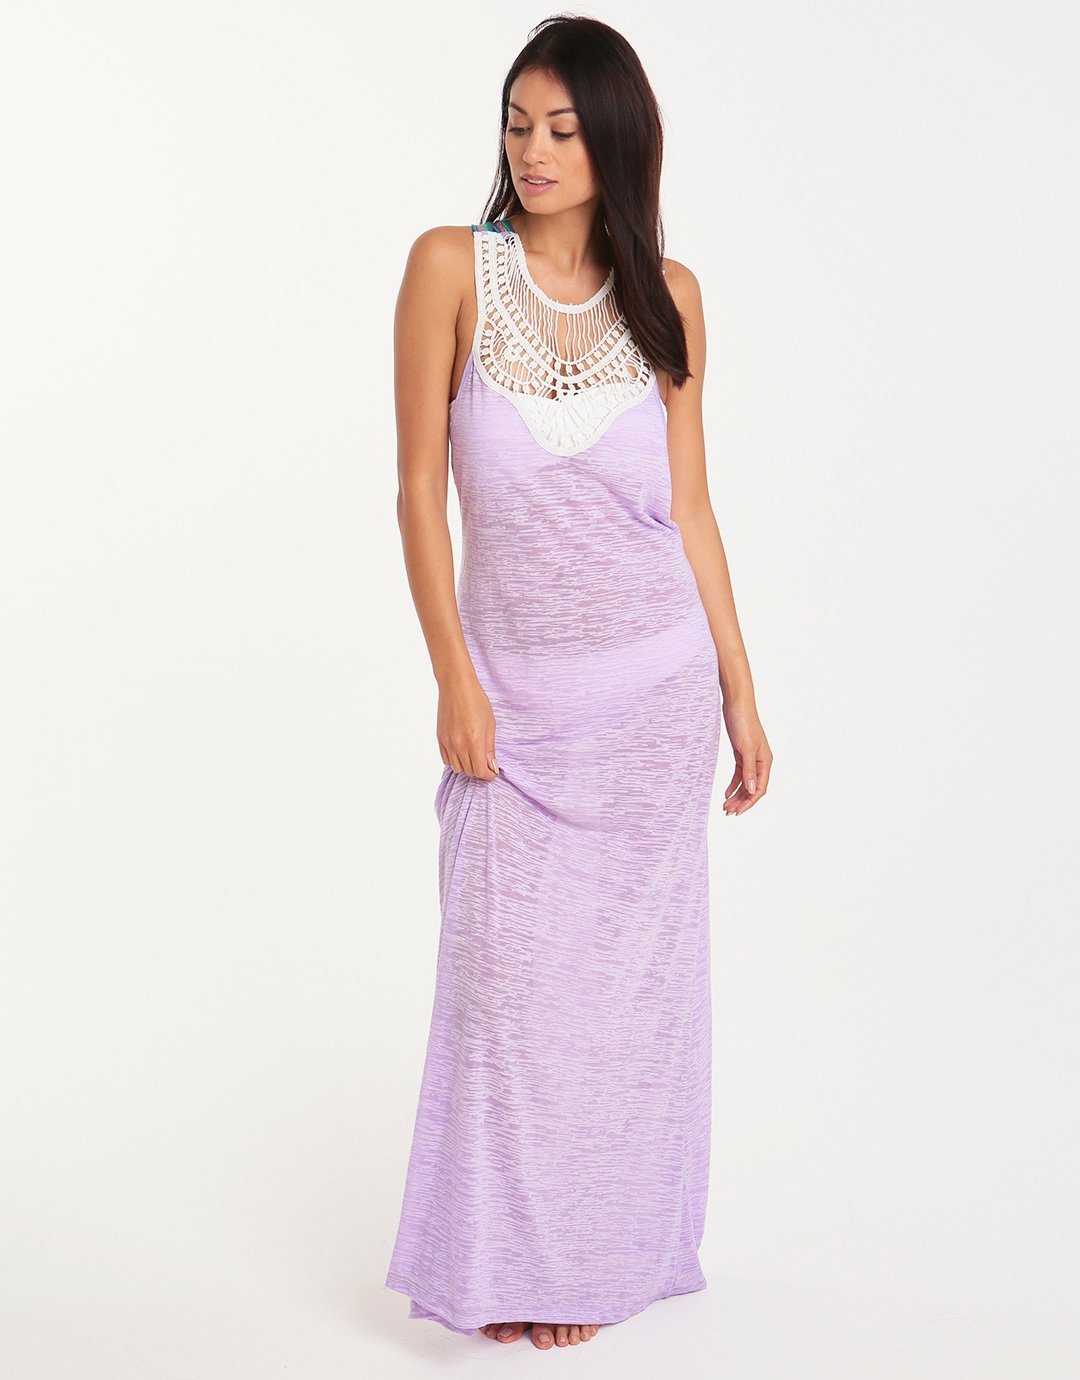 Pitusa Pharaoh Dress - Lavender